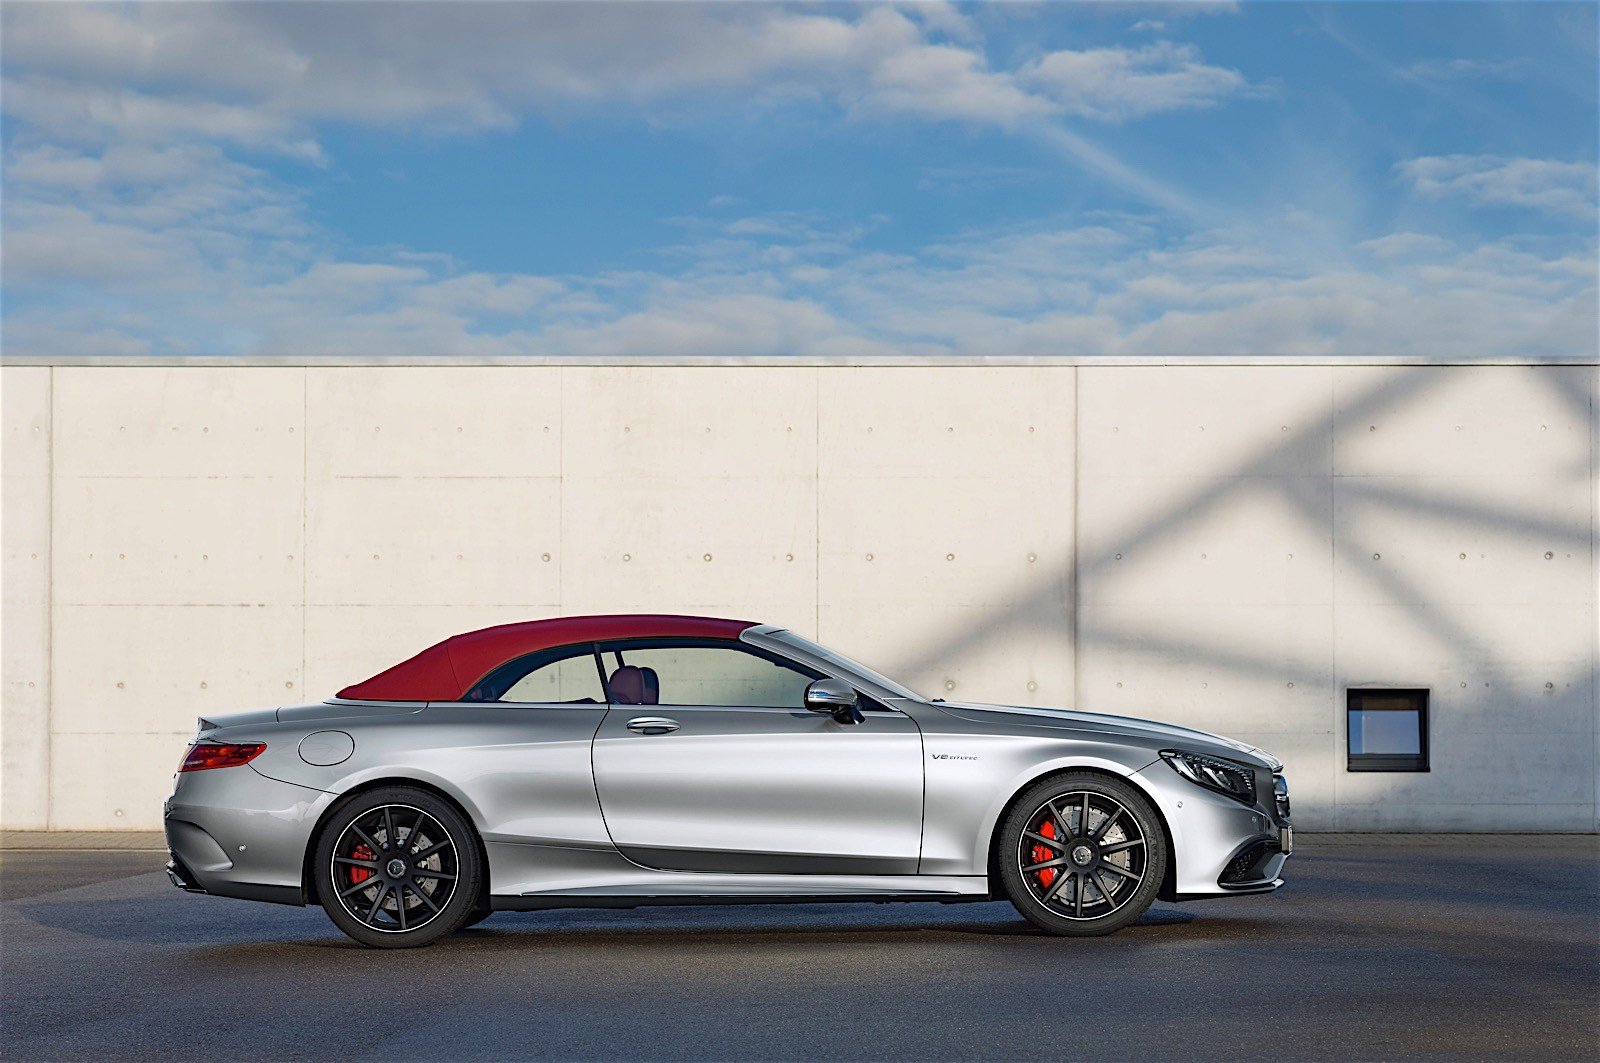 https://s1.cdn.autoevolution.com/images/news/gallery/mercedes-amg-unveils-anniversary-s-63-cabriolet-edition-130-photo-gallery_6.jpg